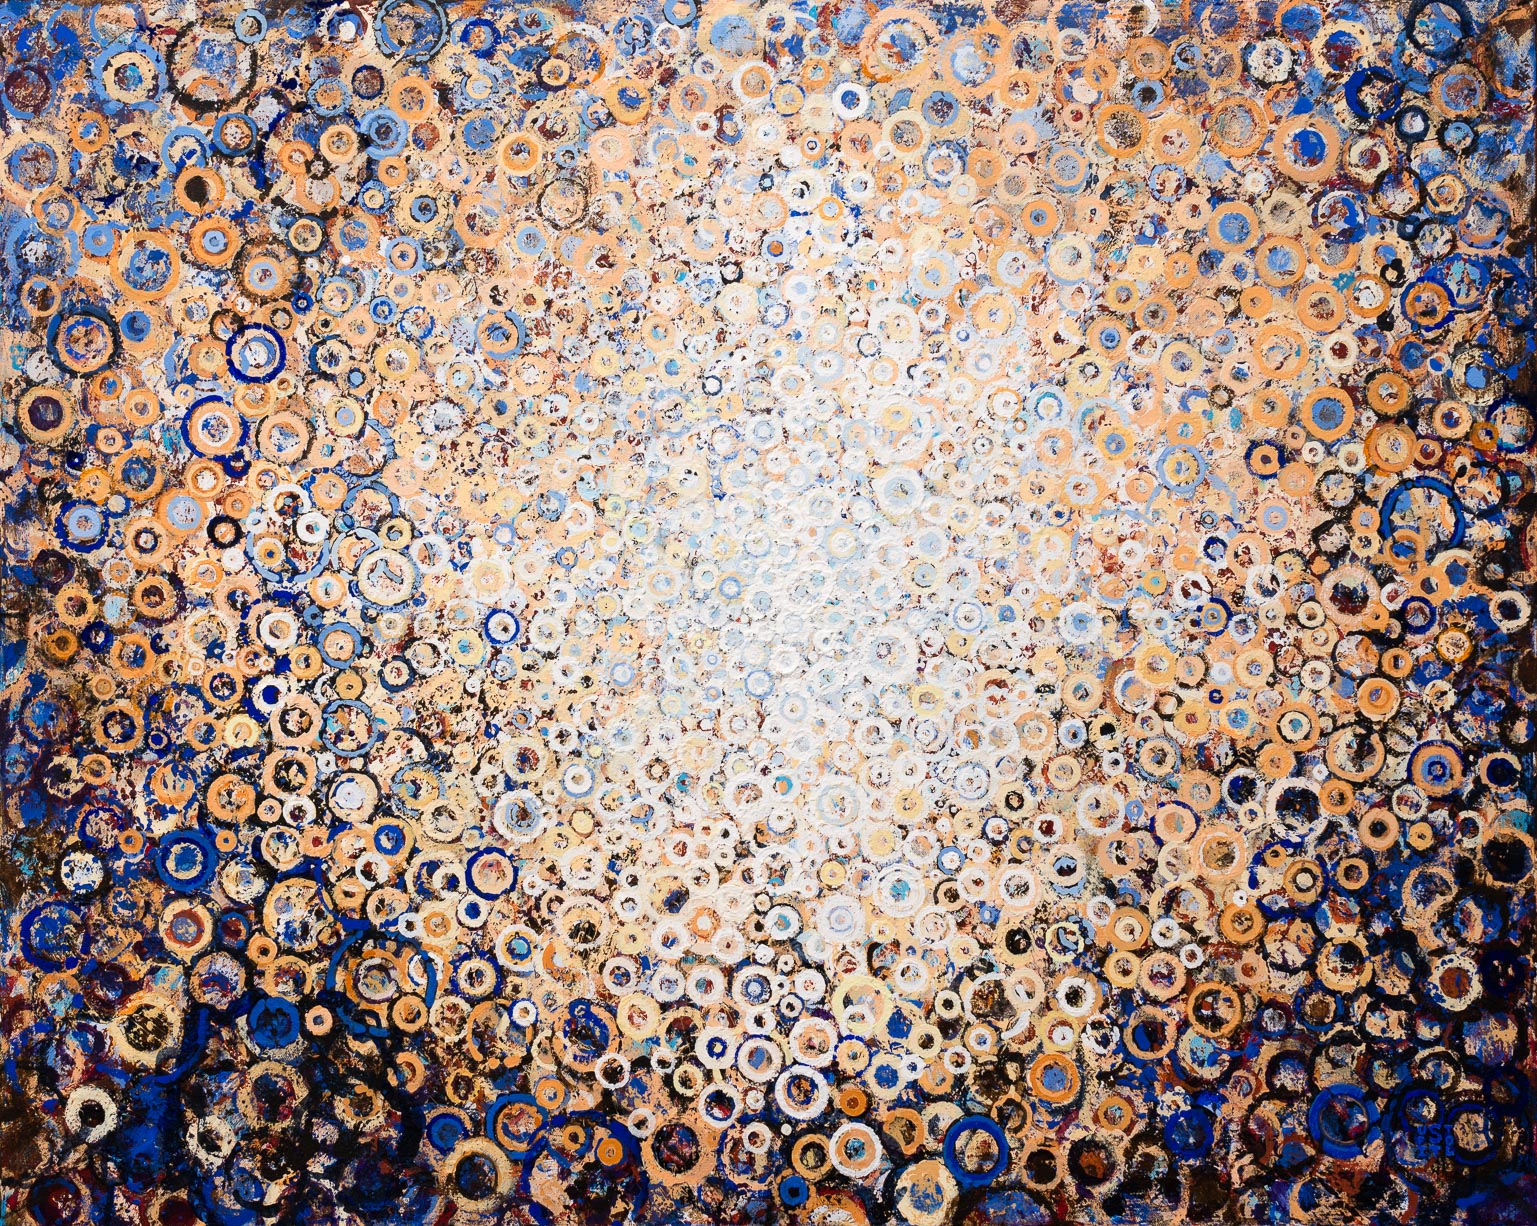 """Radian"" by Randall Stoltzfus. 2015, acrylic dispersion on synthetic canvas, 32 x 40 inches"